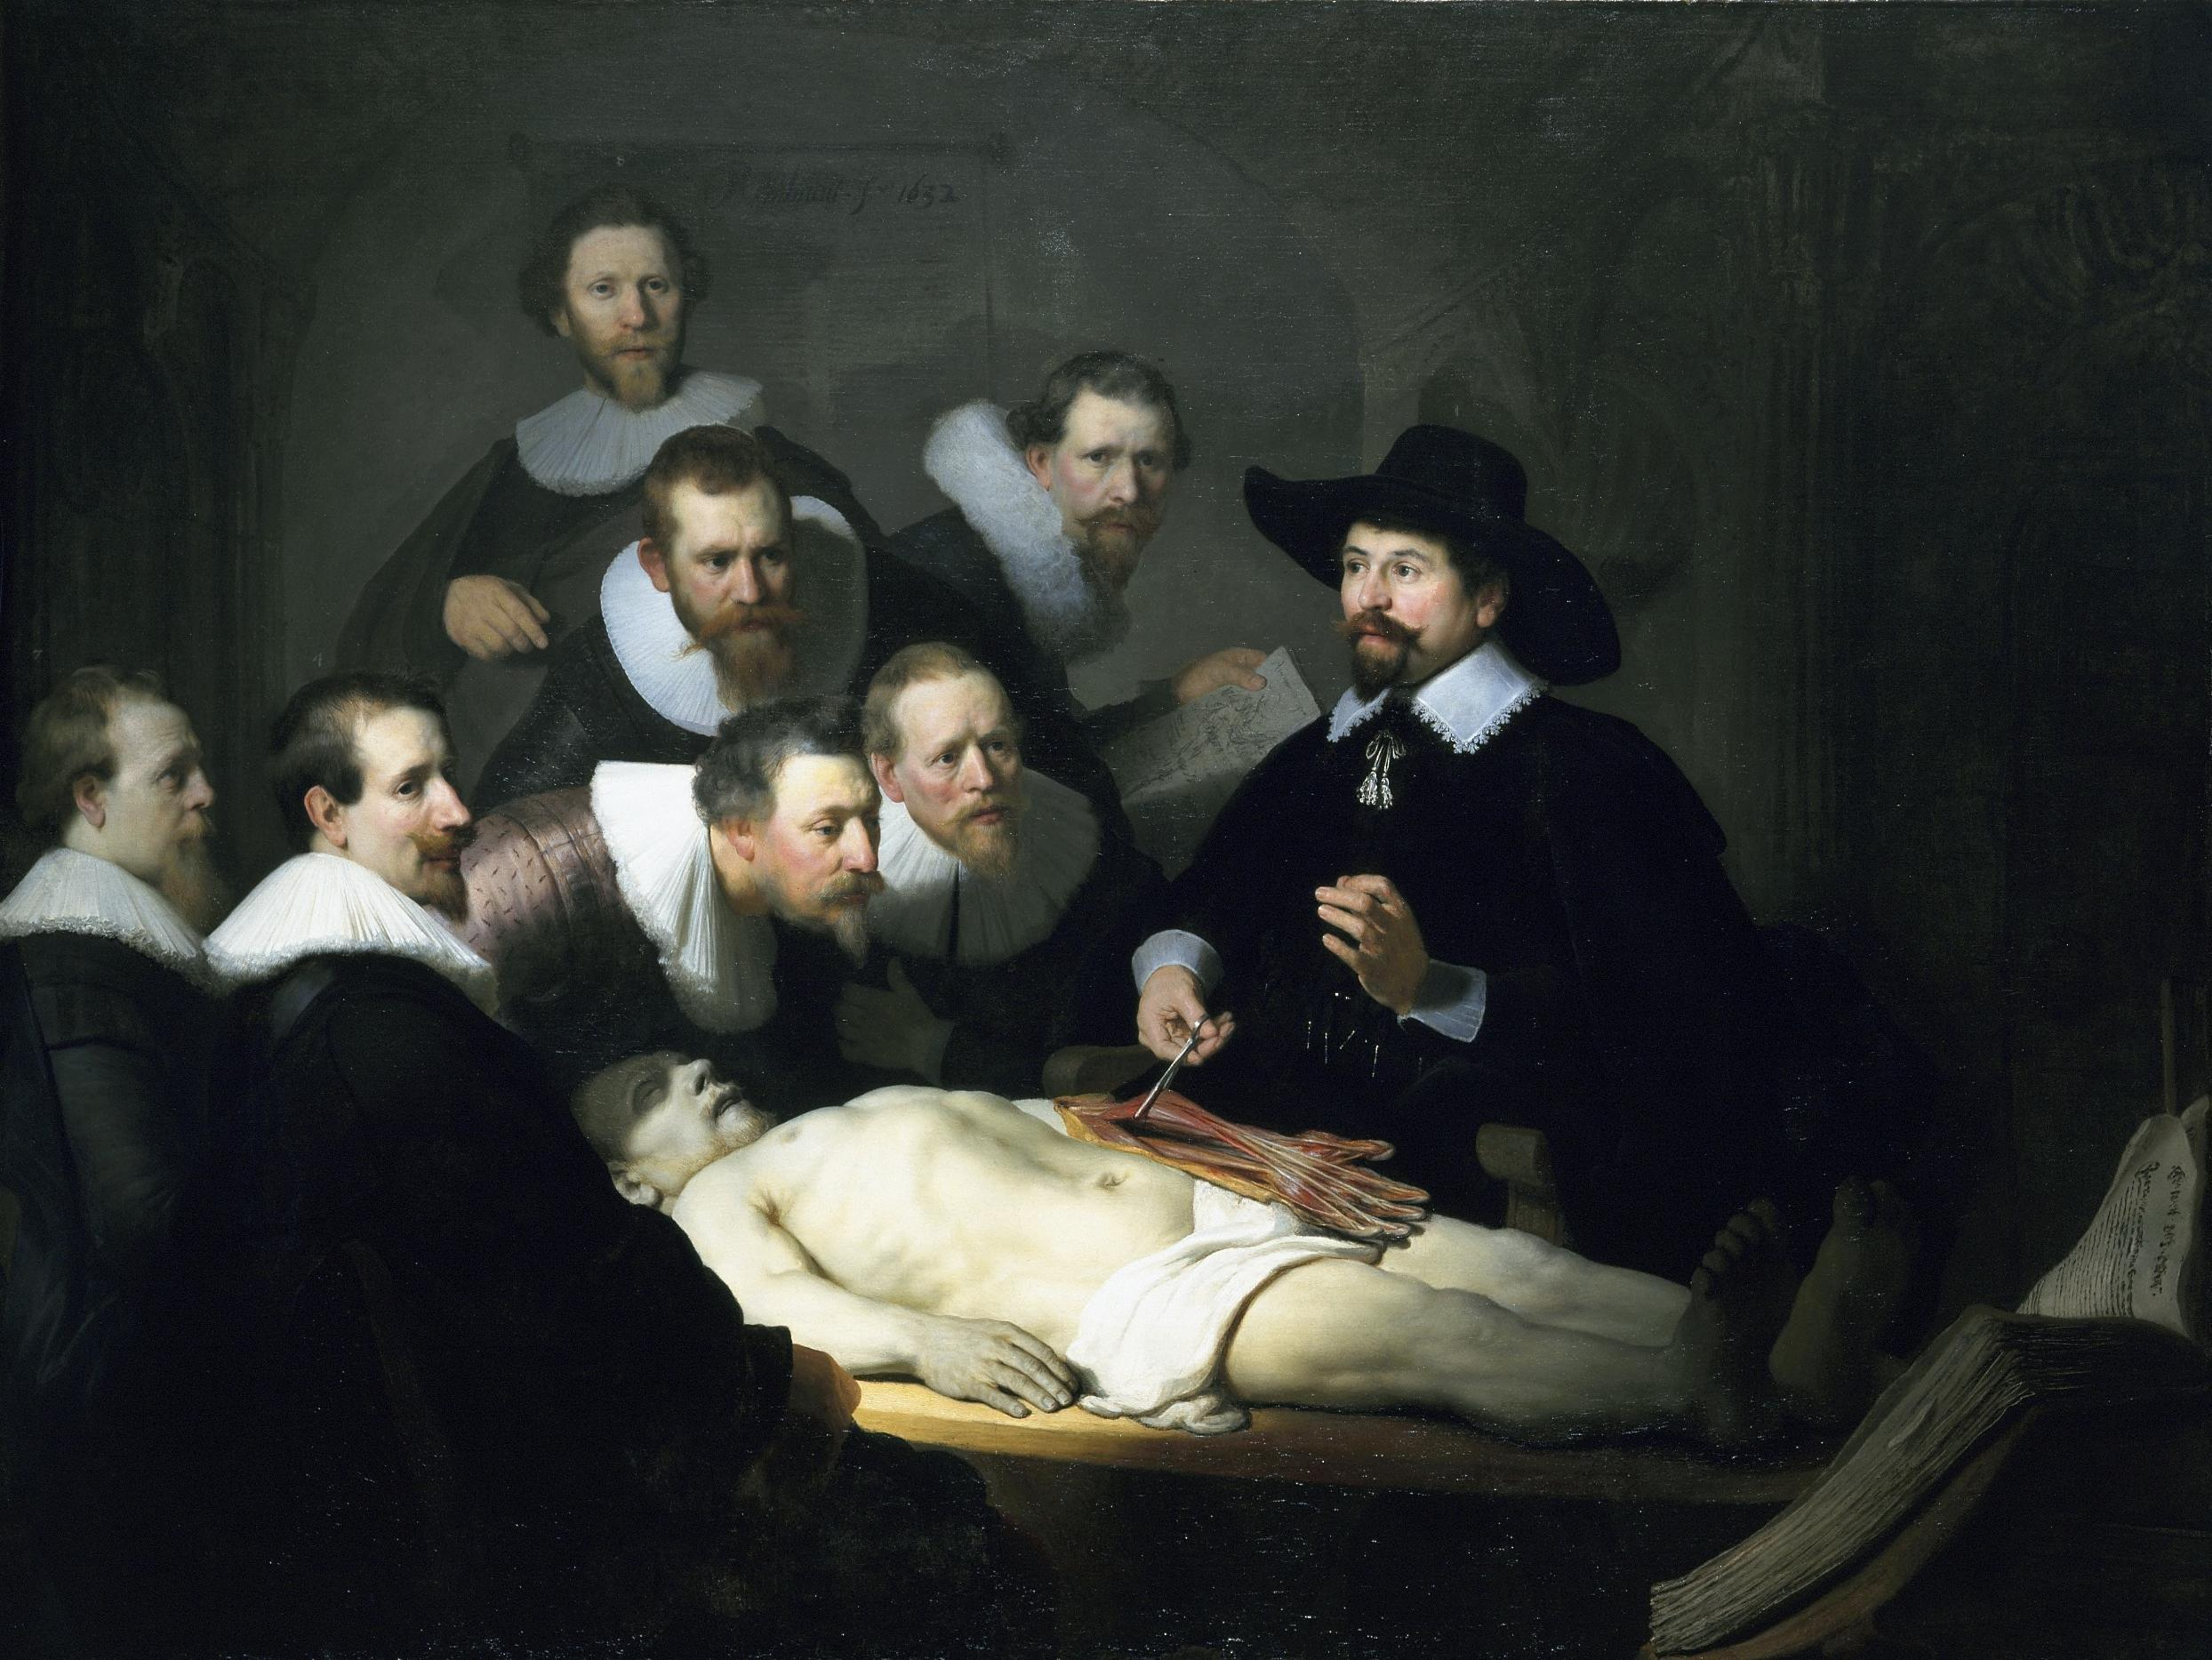 http://upload.wikimedia.org/wikipedia/commons/8/8c/The_Anatomy_Lesson.jpg